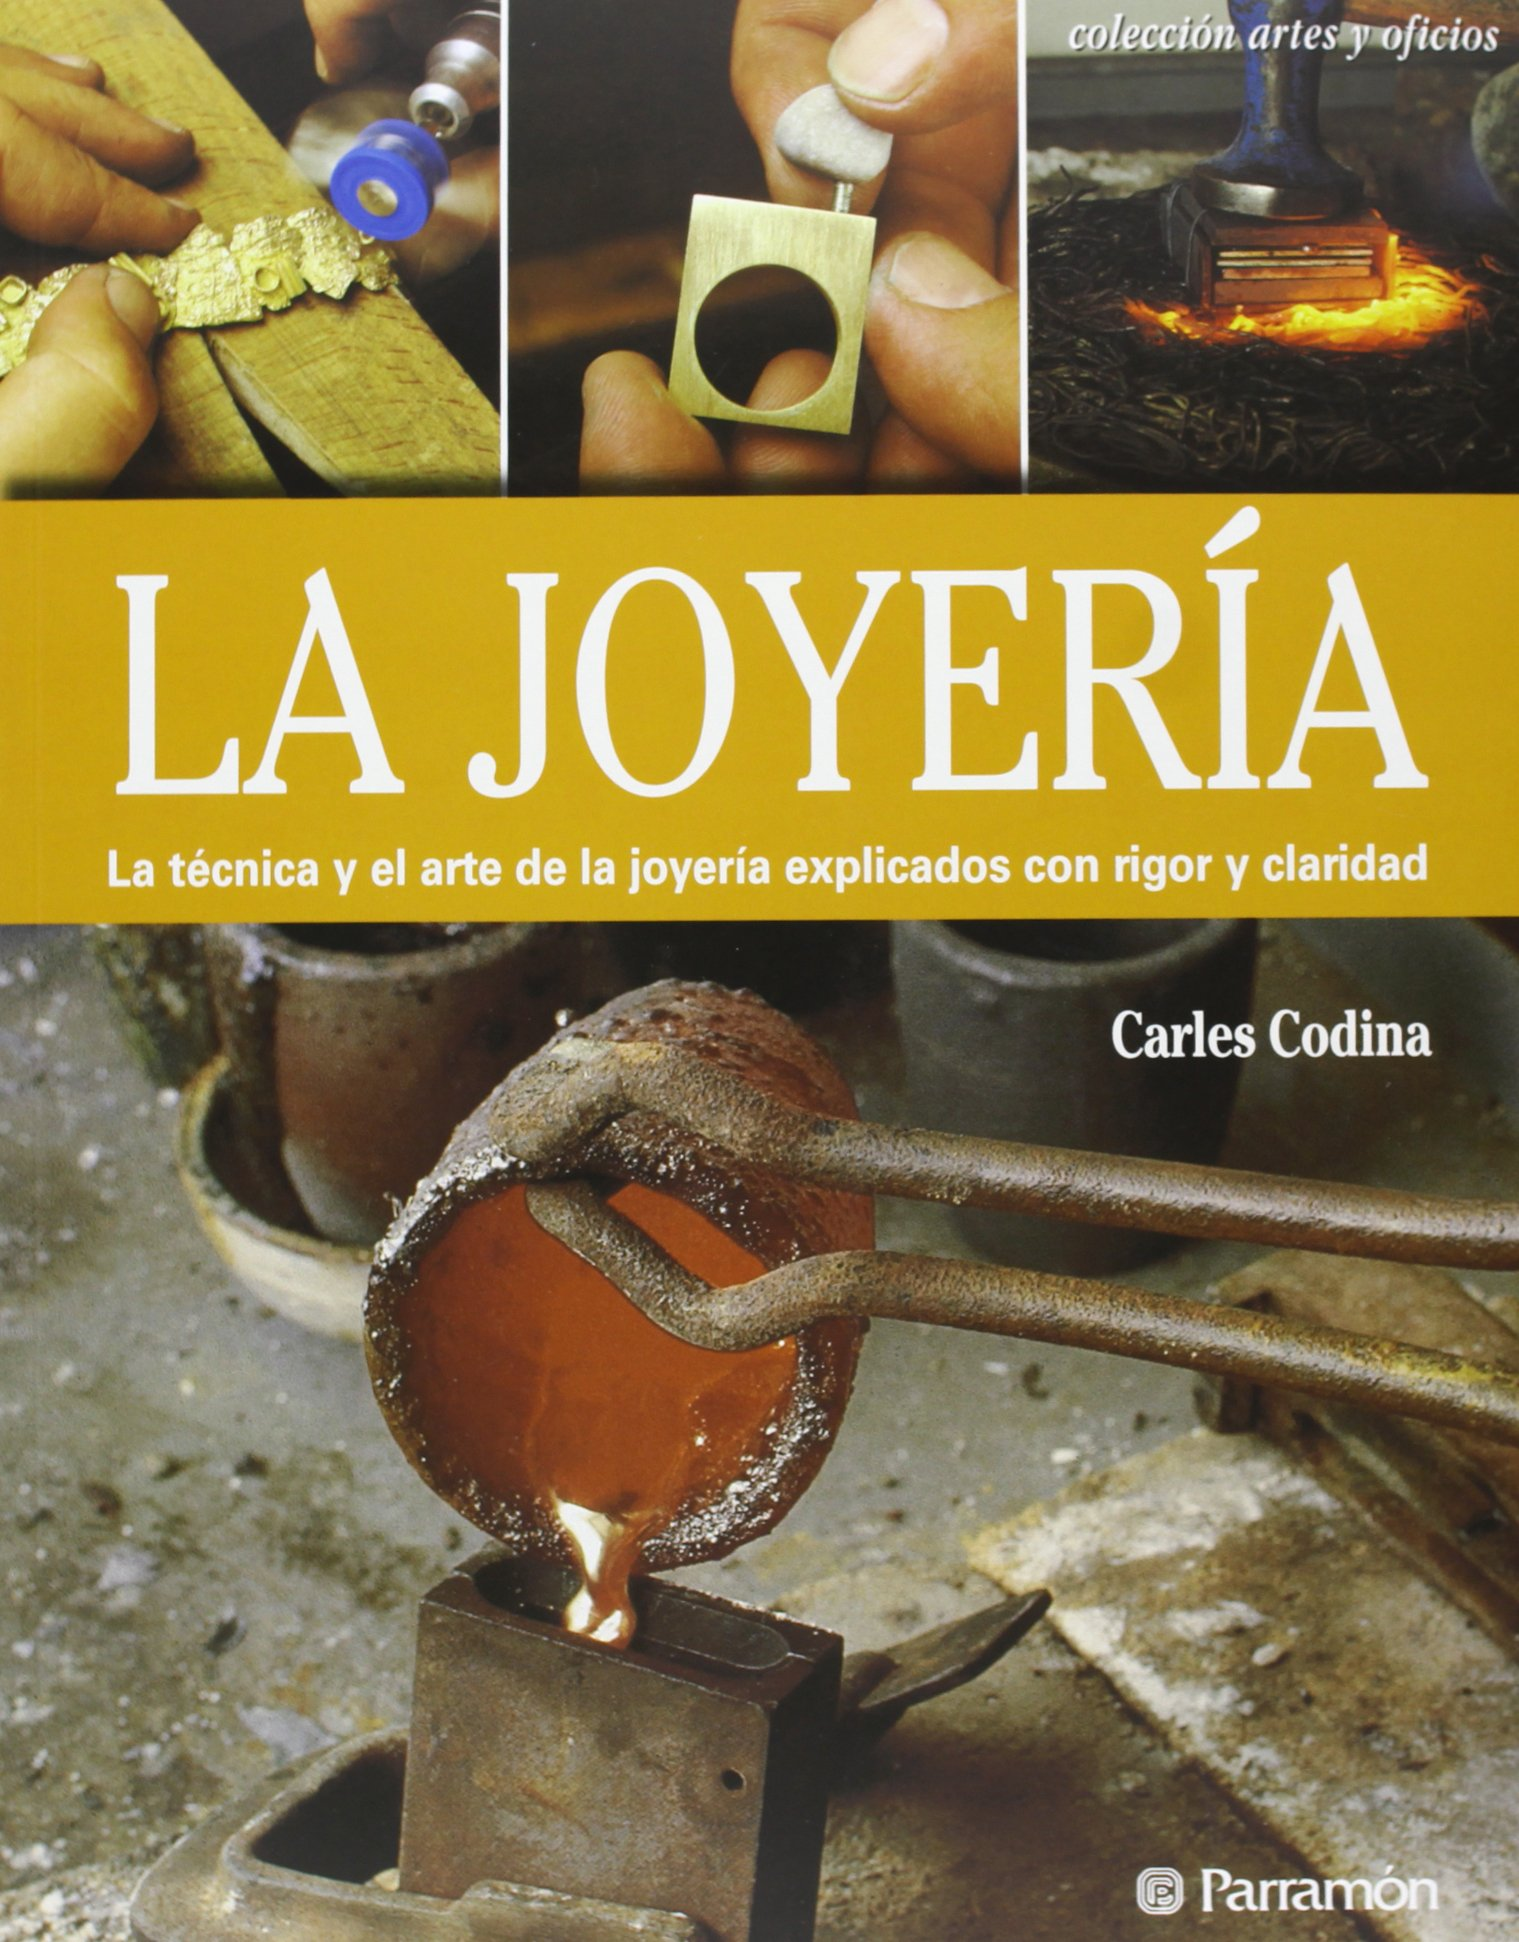 La joyería (Spanish Edition): Carles Codina i Armengol: 9788434241039: Amazon.com: Books